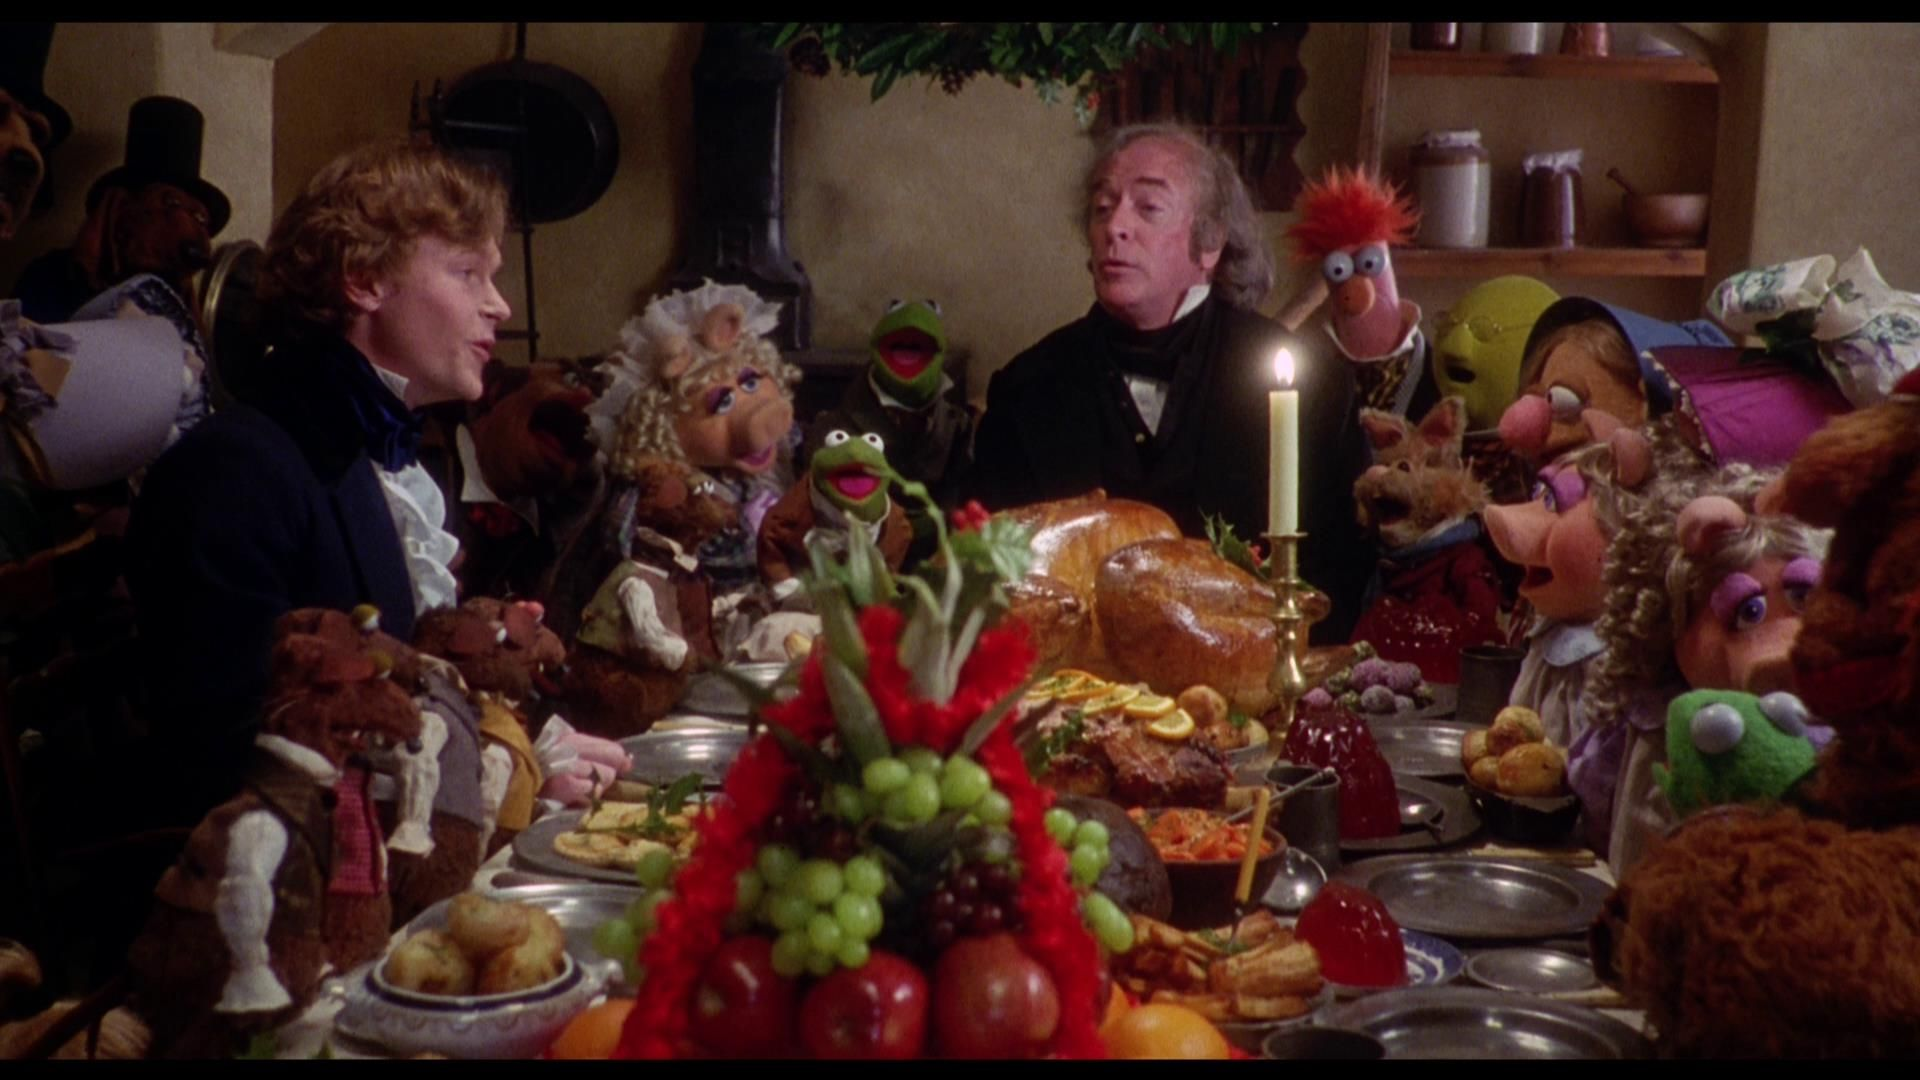 🎵The love we found, the love we found. We carry with us so we're never  quite alone🎵🎄💖 | Muppet christmas carol, Muppets, It's a wonderful life